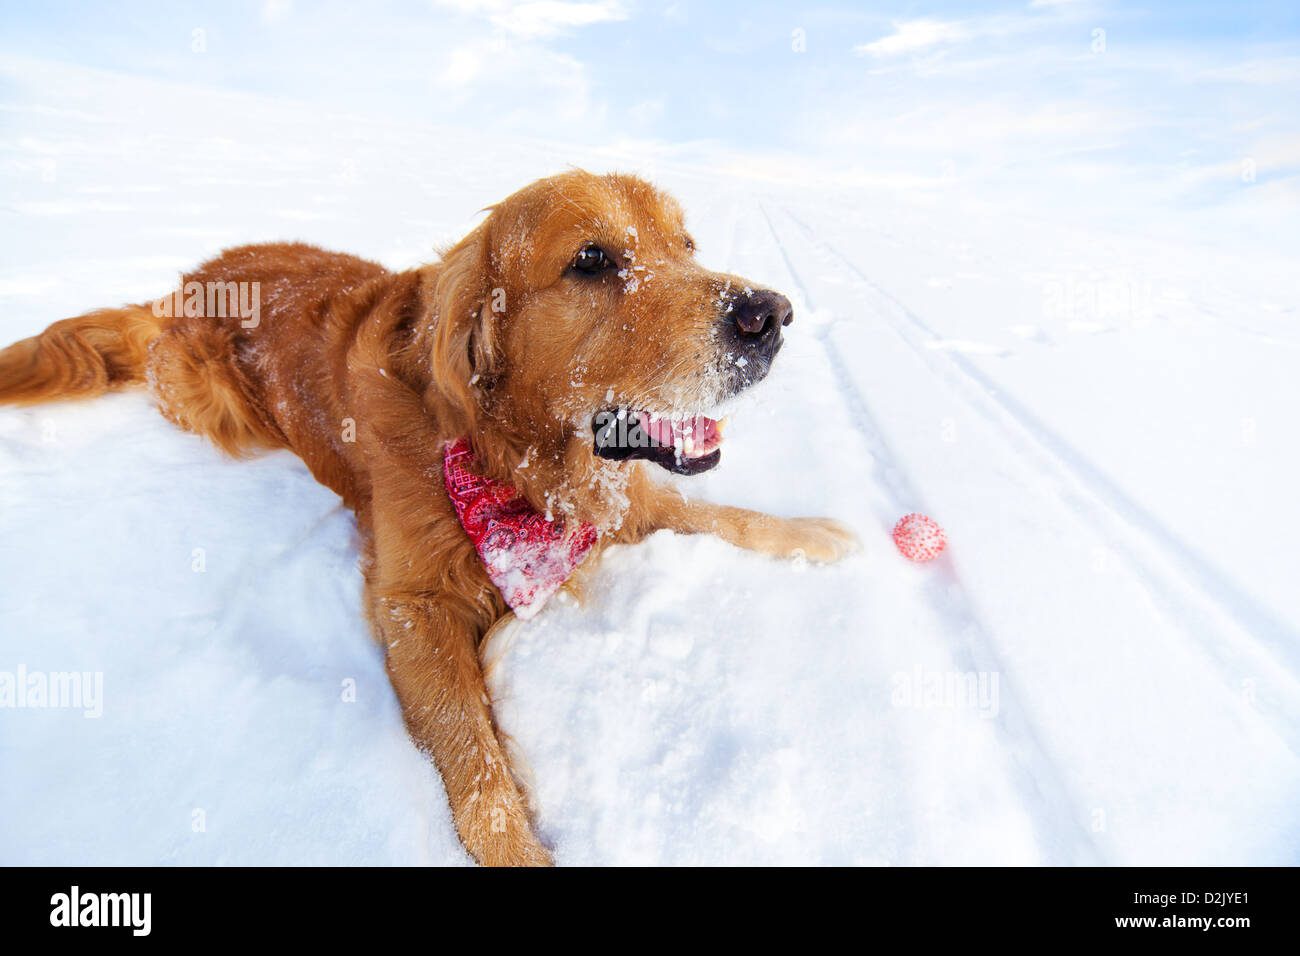 Labrador with toy lying on snow. - Stock Image